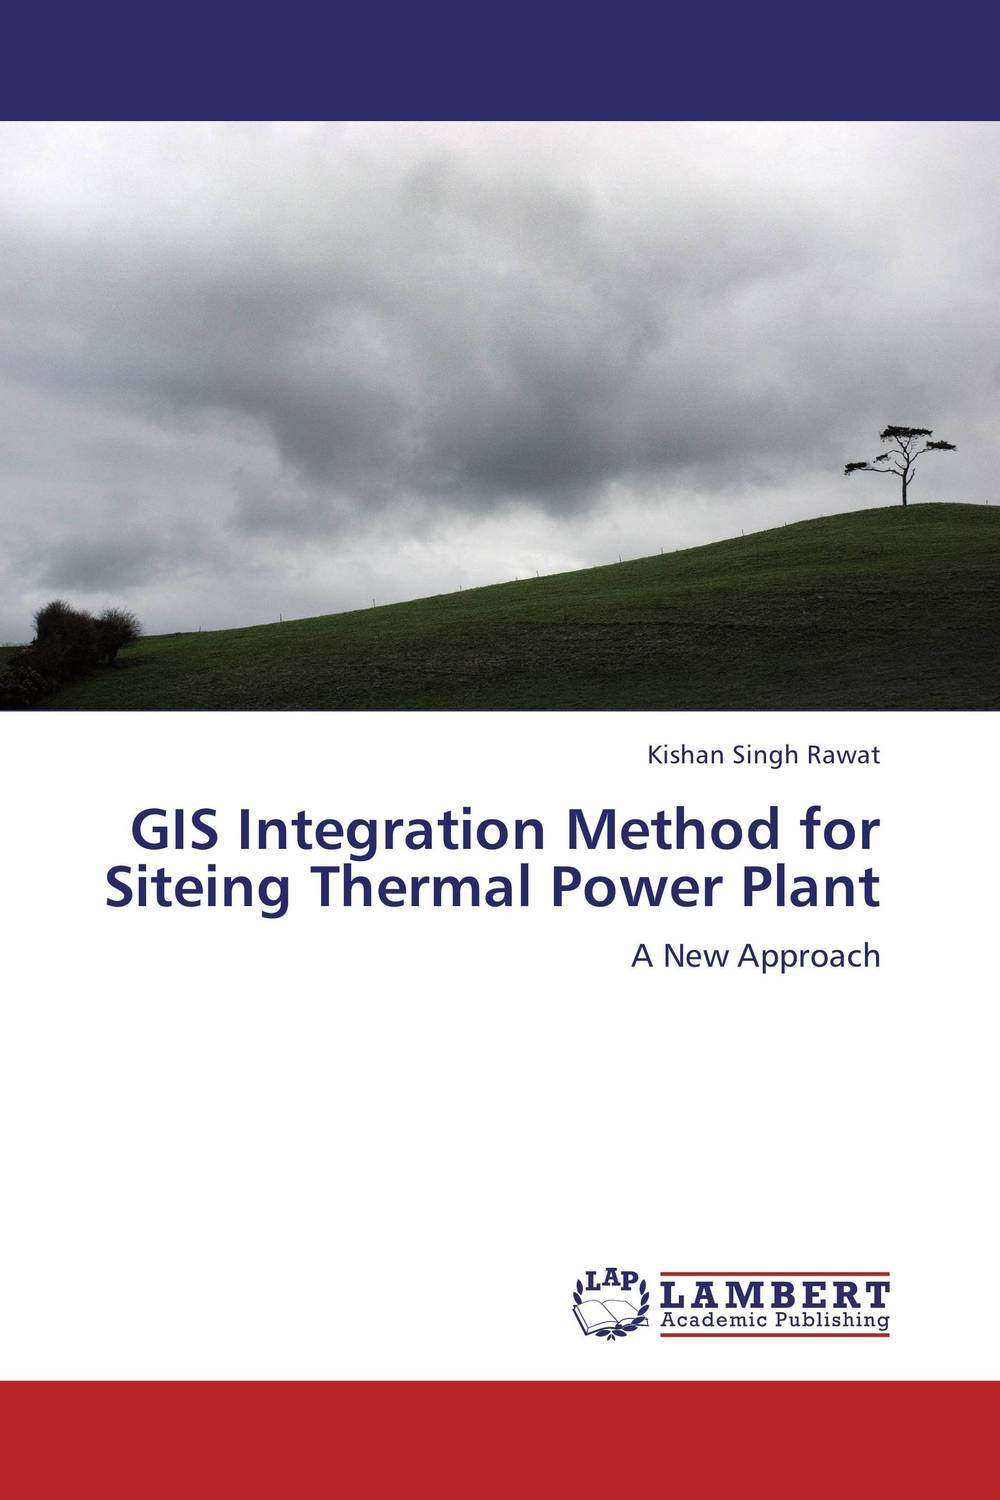 GIS Integration Method for Siteing Thermal Power Plant gis